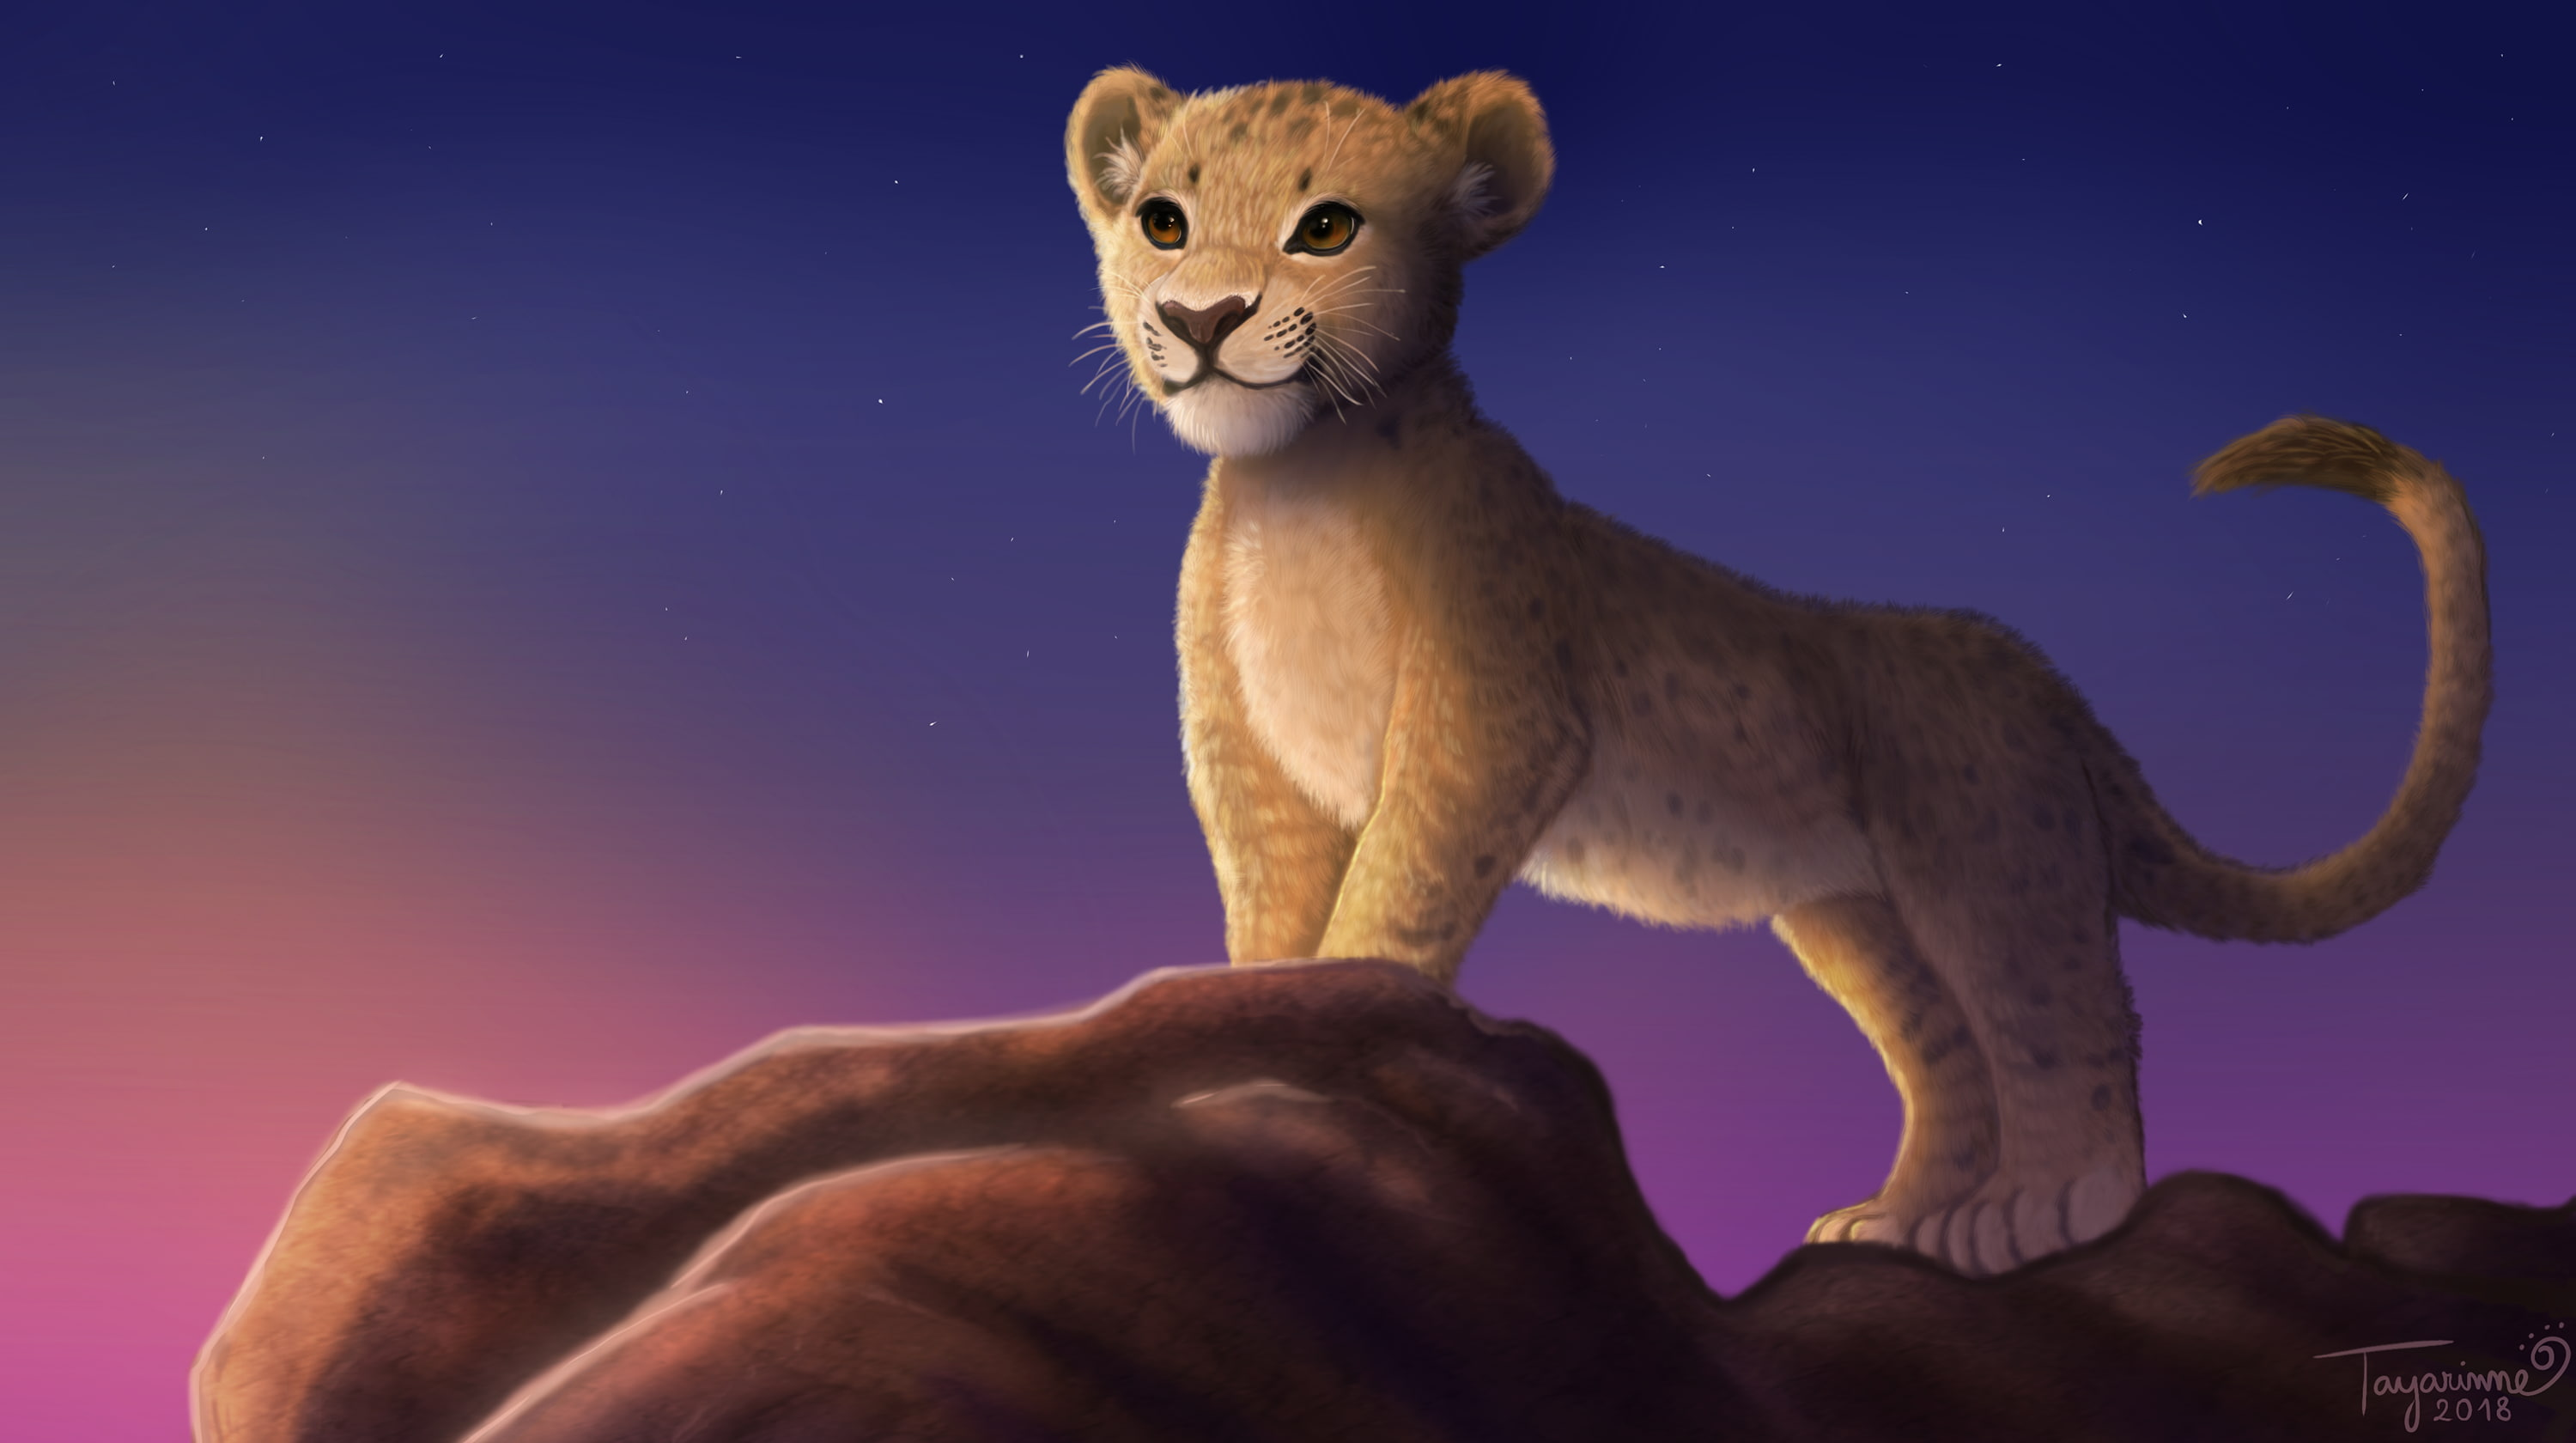 Movie The Lion King Simba Simba The Lion King 2019 1754729 Hd Wallpaper Backgrounds Download